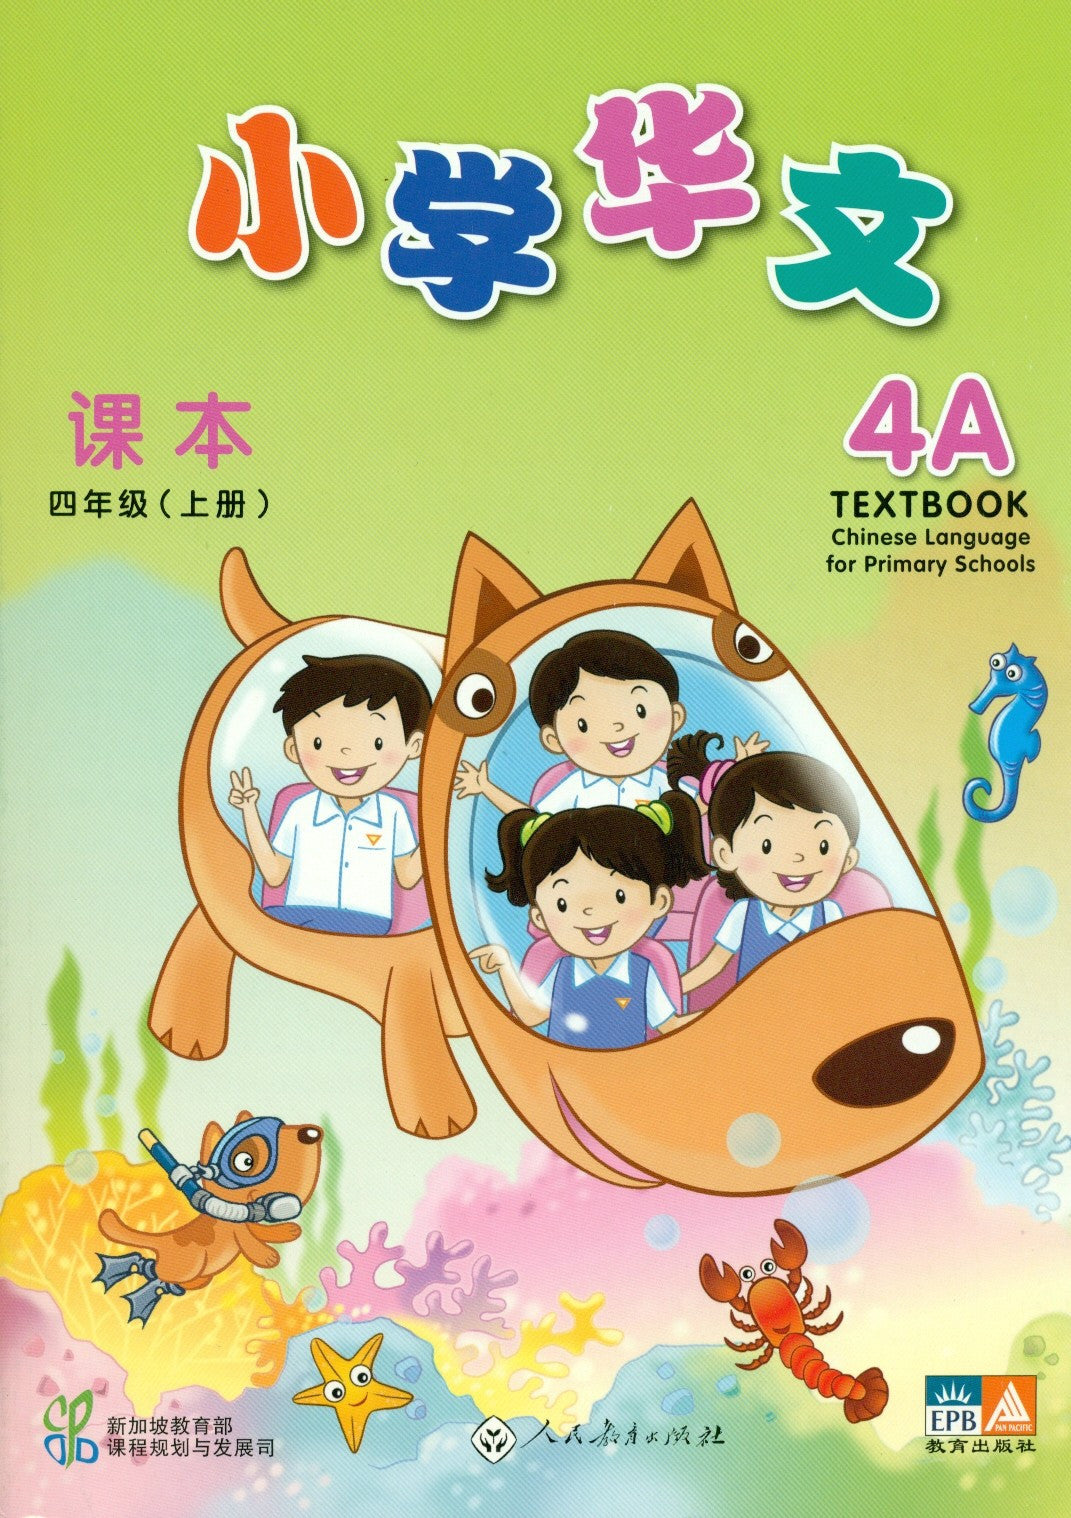 Chinese Language for Primary Schools: Textbook 4A